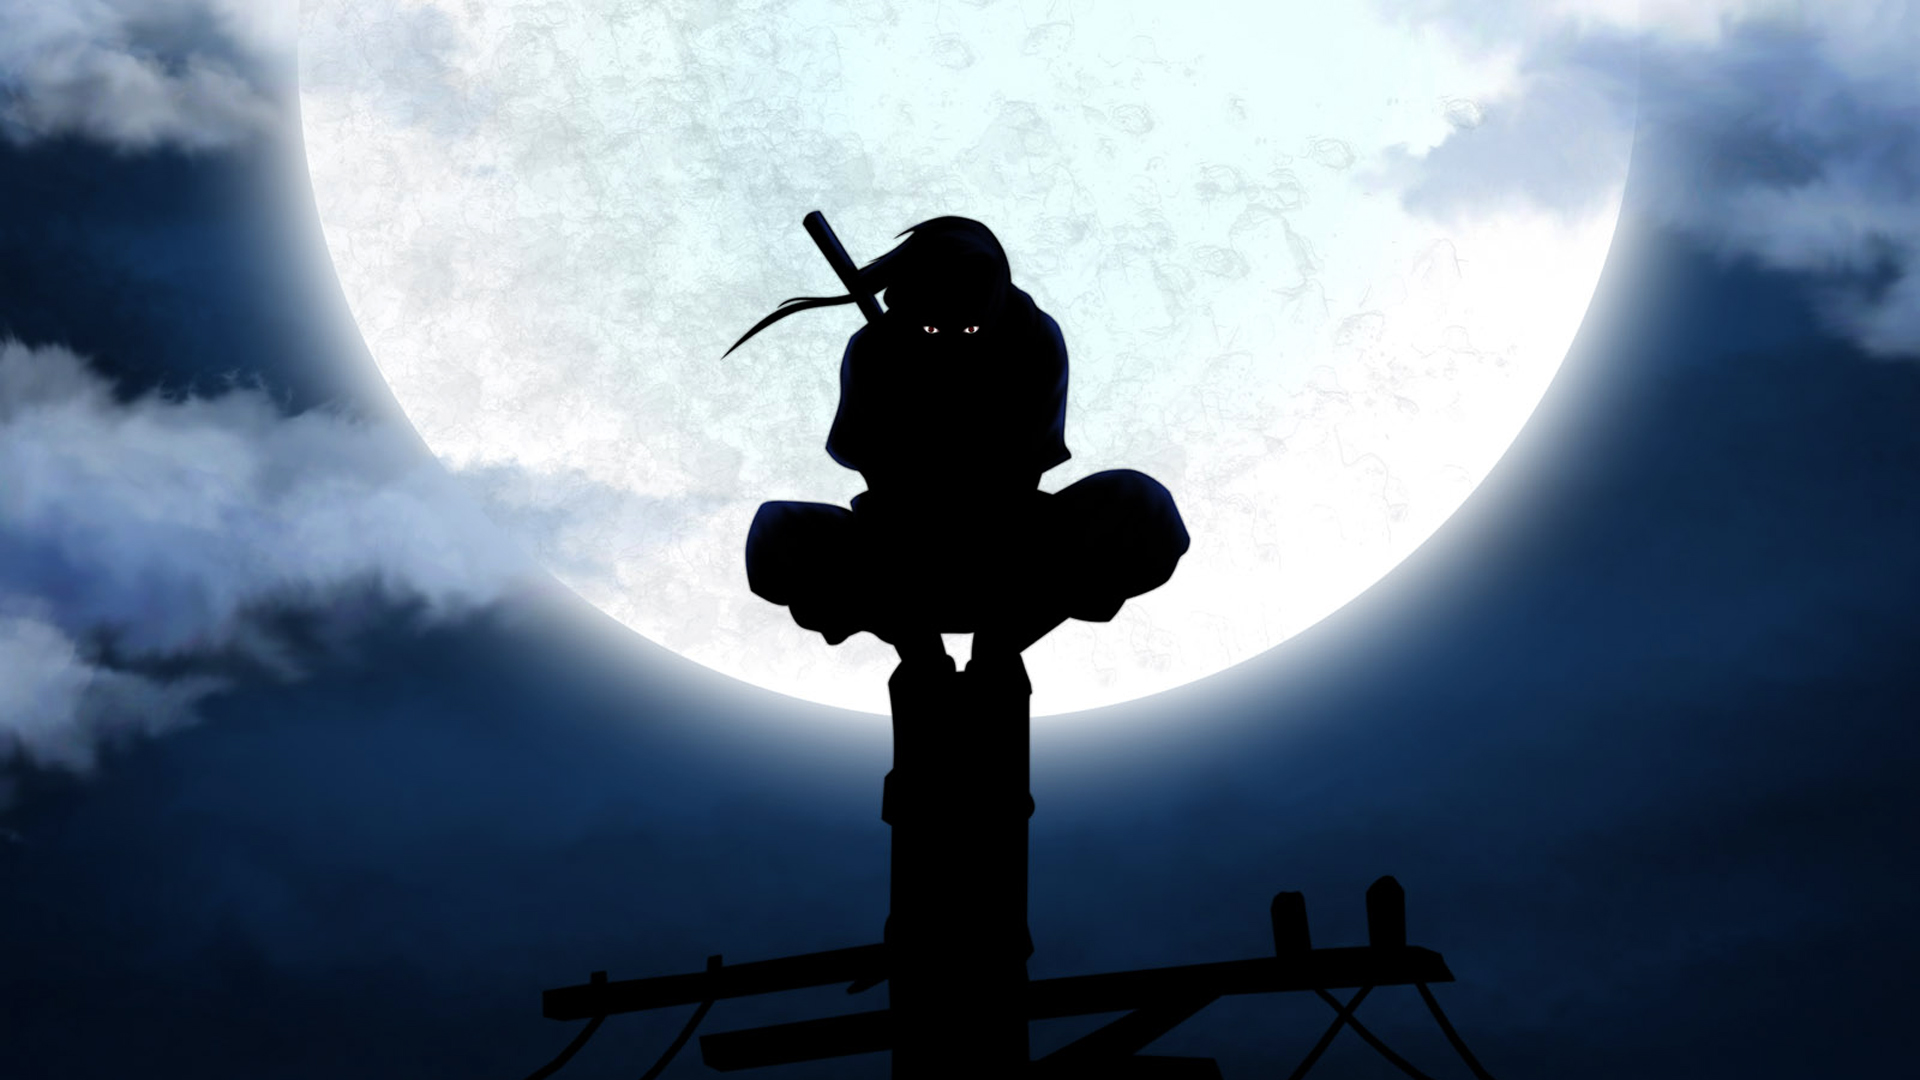 Anbu-Ninja-Itachi-Uchiha-Anime-1920x1080-Full-Moonunca-wallpaper-wpc5802090